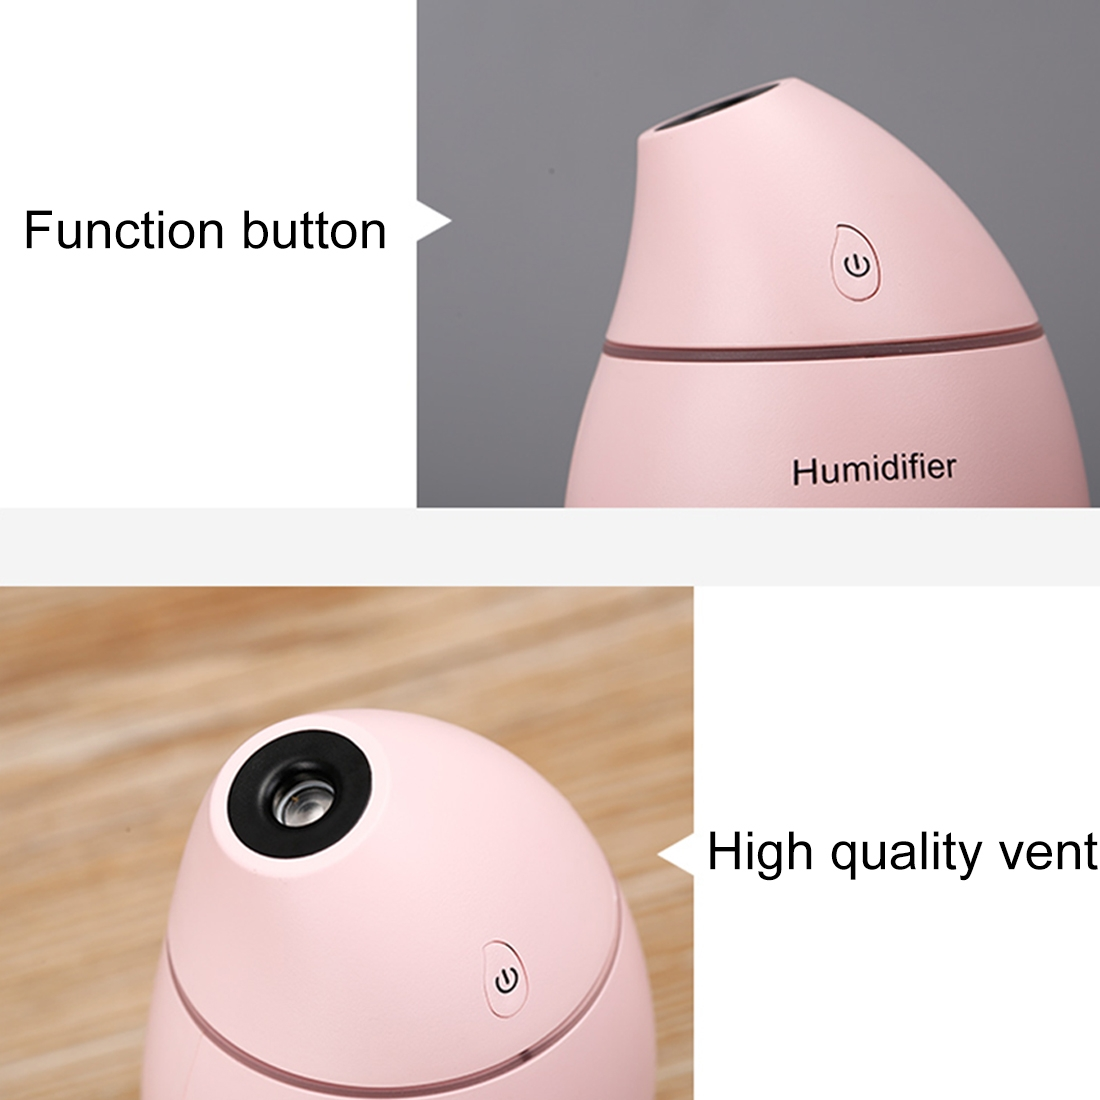 2W Creative Portable Mango Shape Mute Desktop Air Humidifier with LED Light, Capacity: 160ml, DC 5V (White)